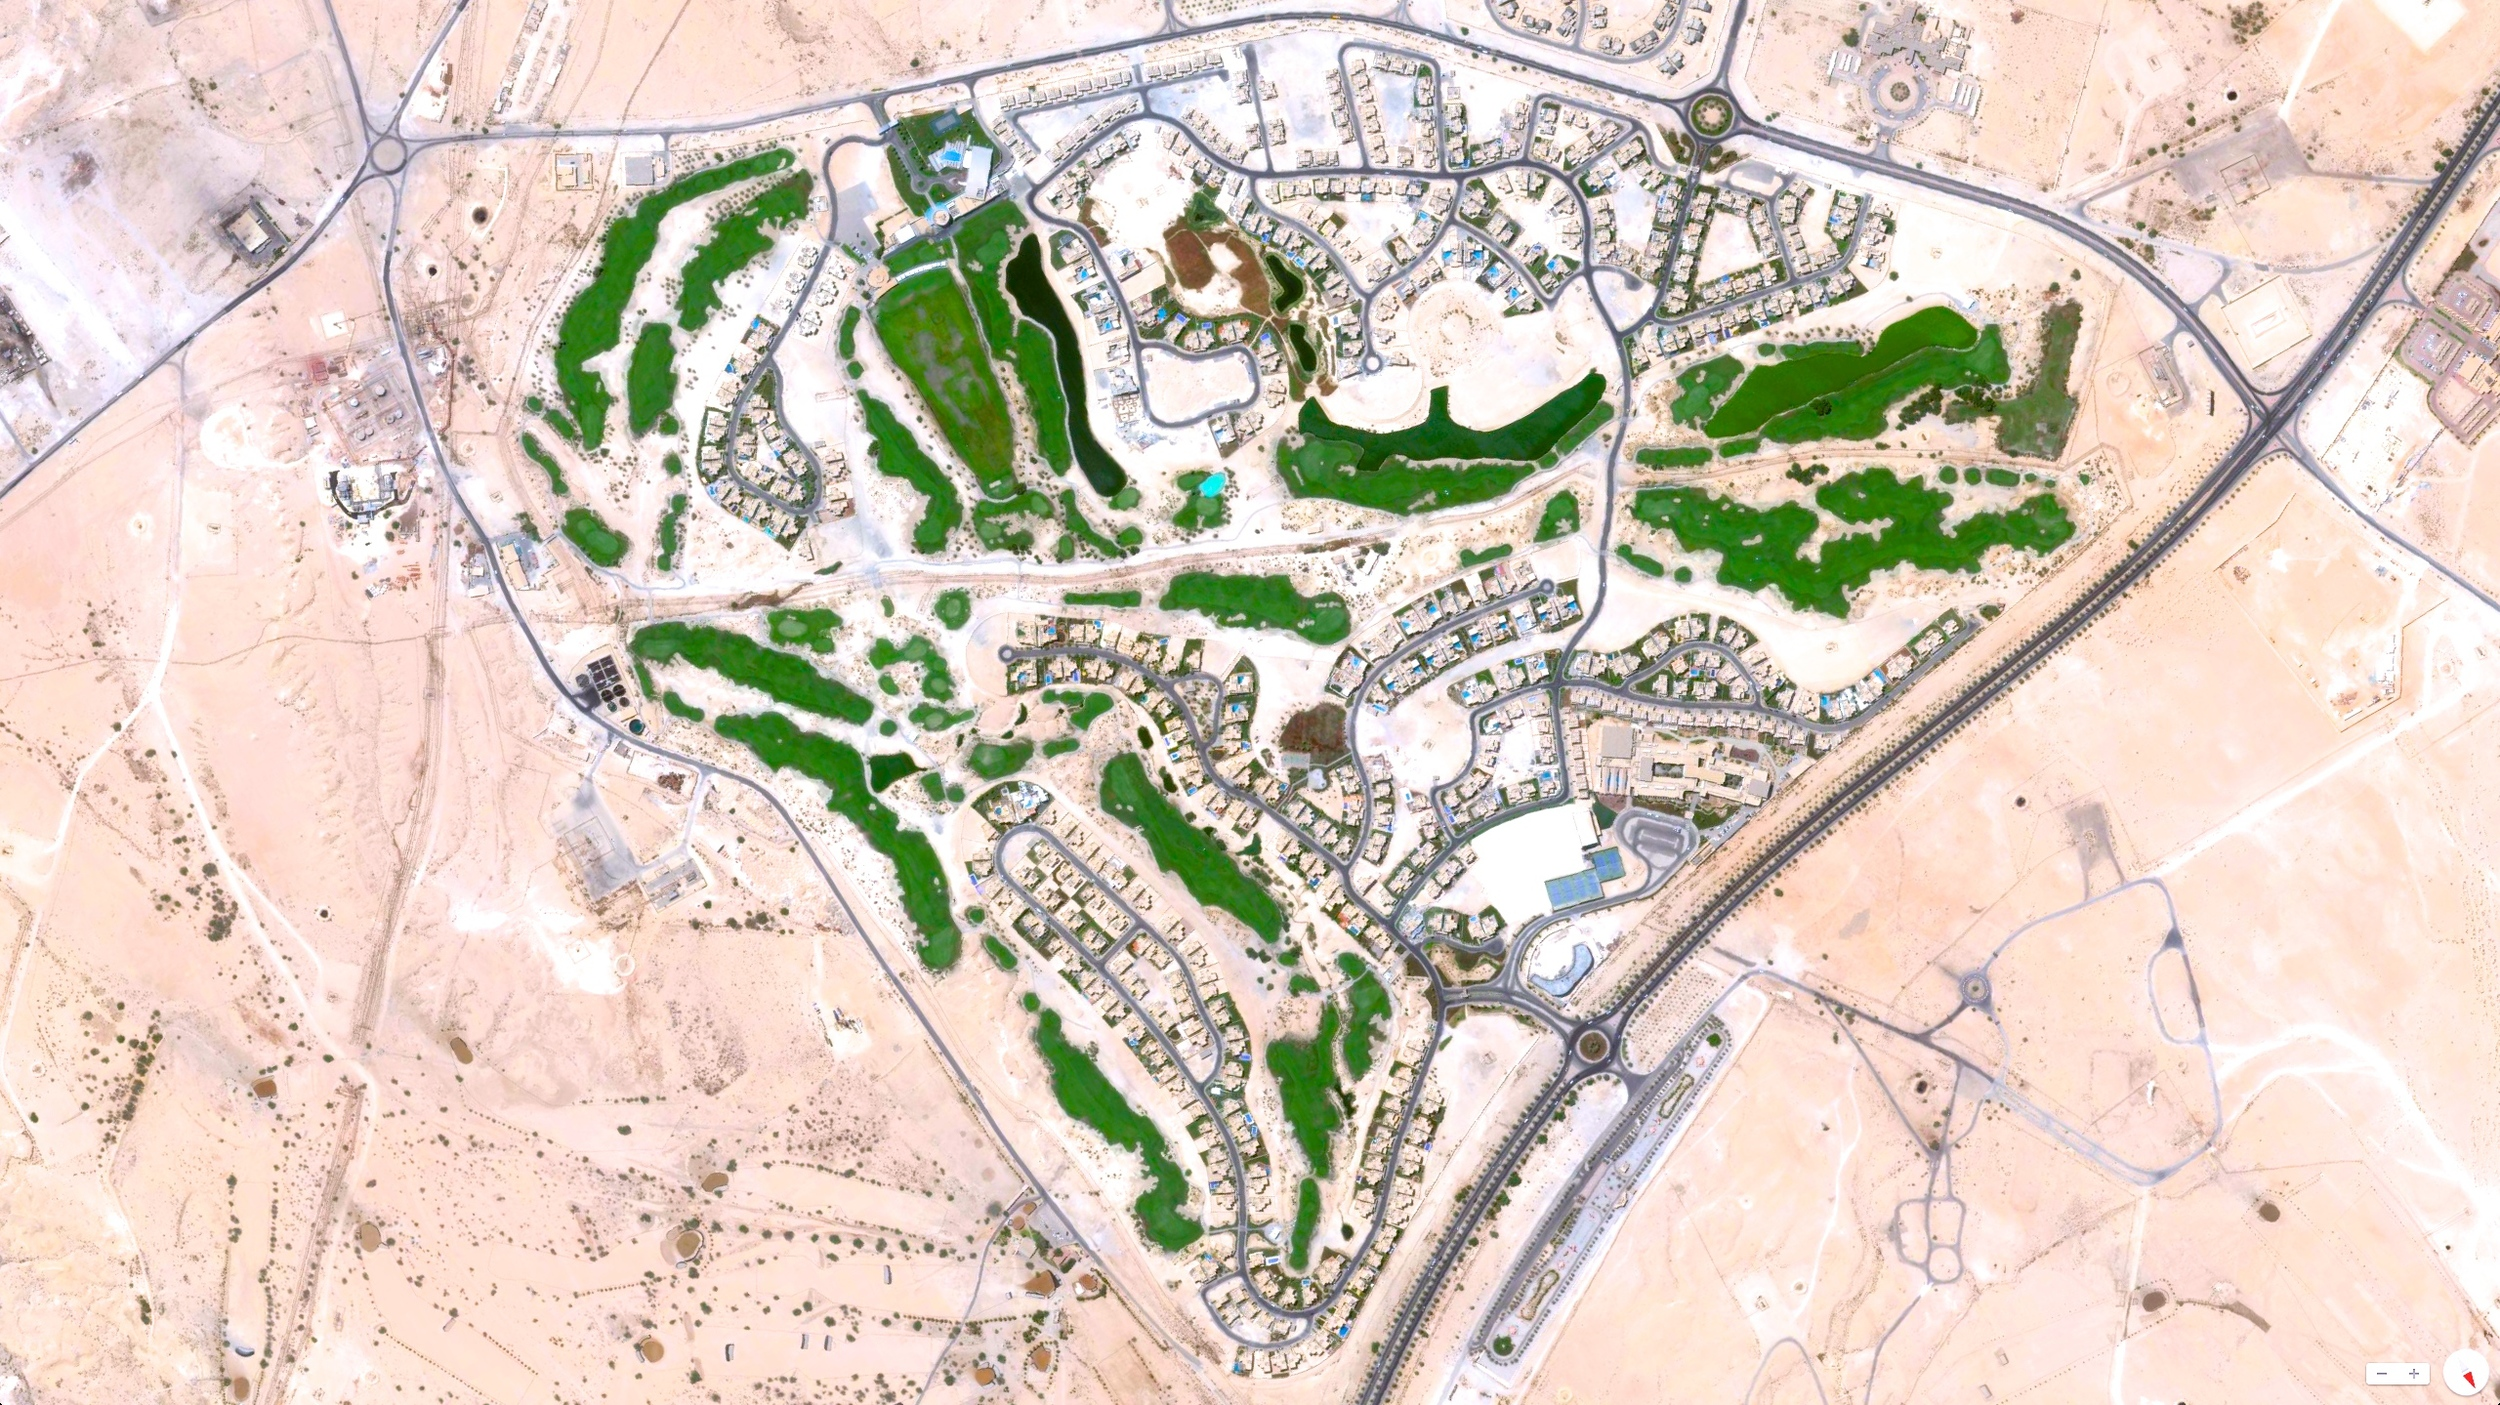 1/10/2014    The Royal Golf Club   Riffa, Bahrain  N26° 6.2287', E050° 33.9063'